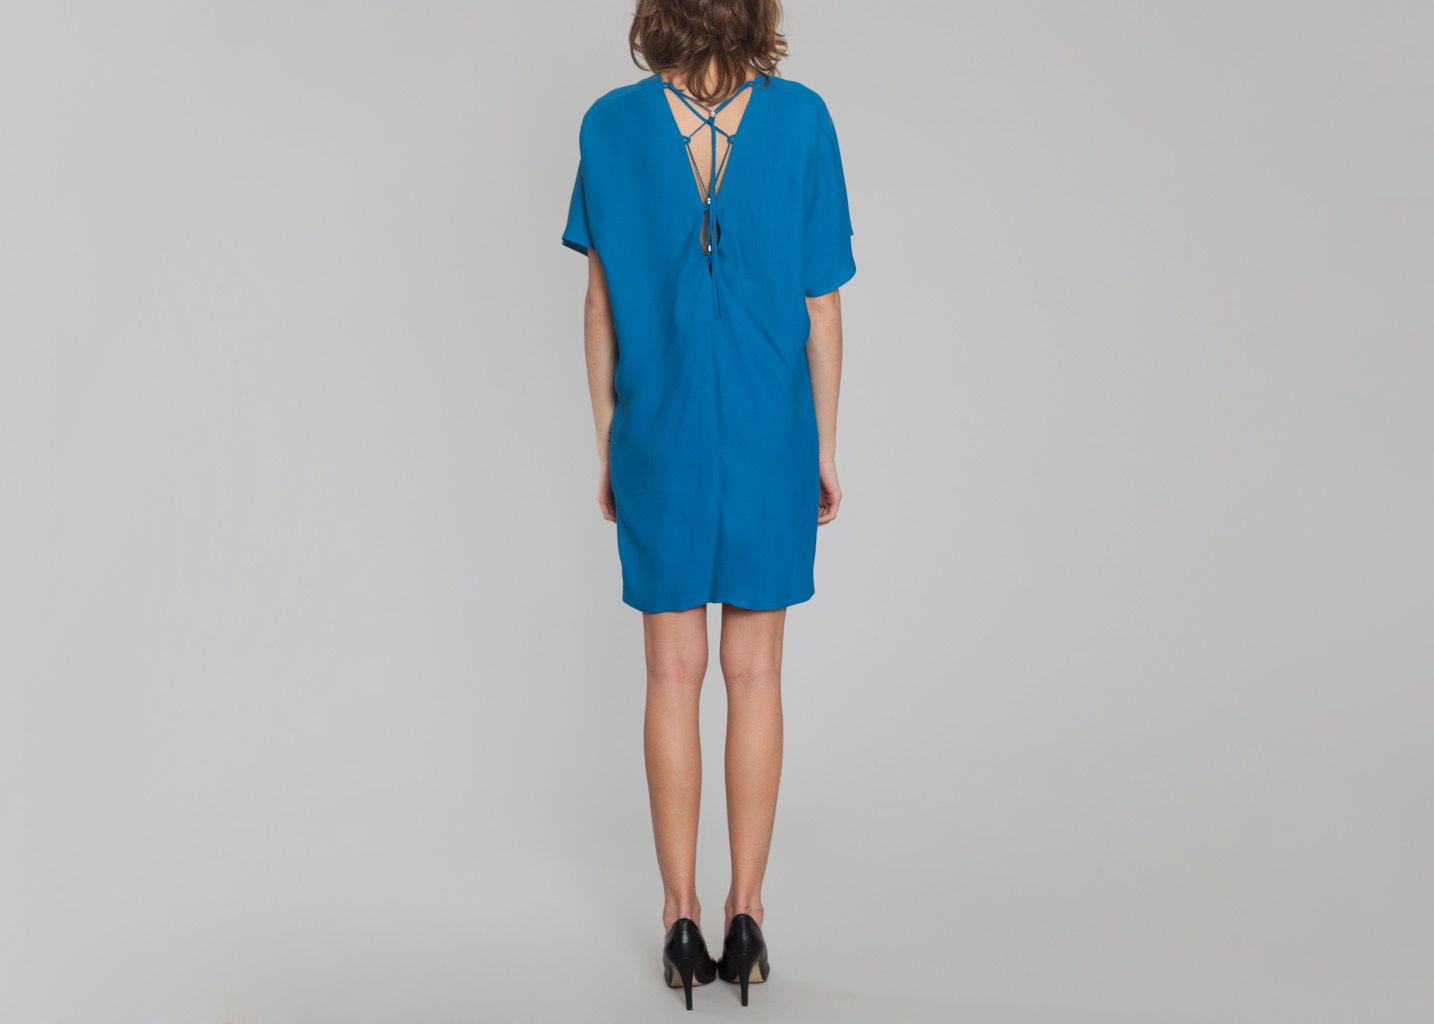 Robe cocktail tara jarmon